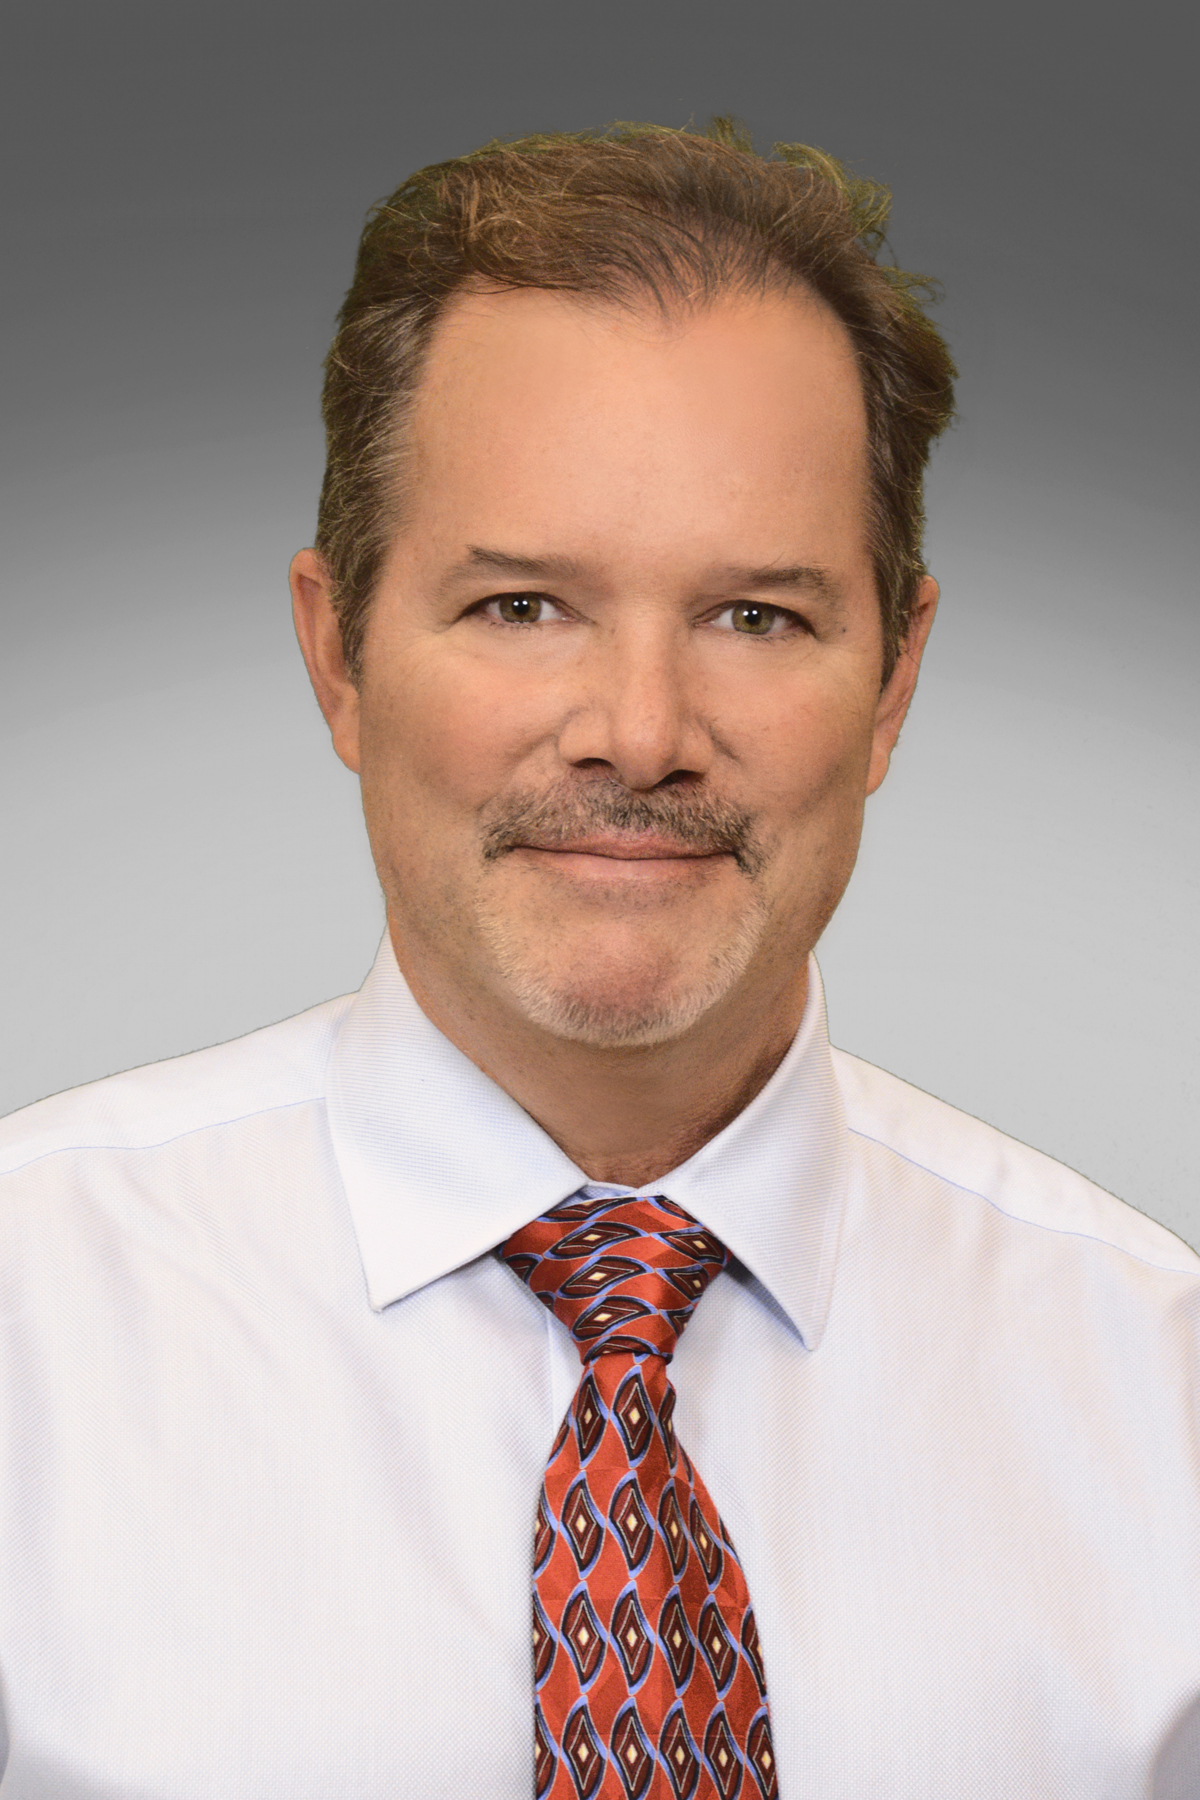 Steven Schramm, Atlanta Physician